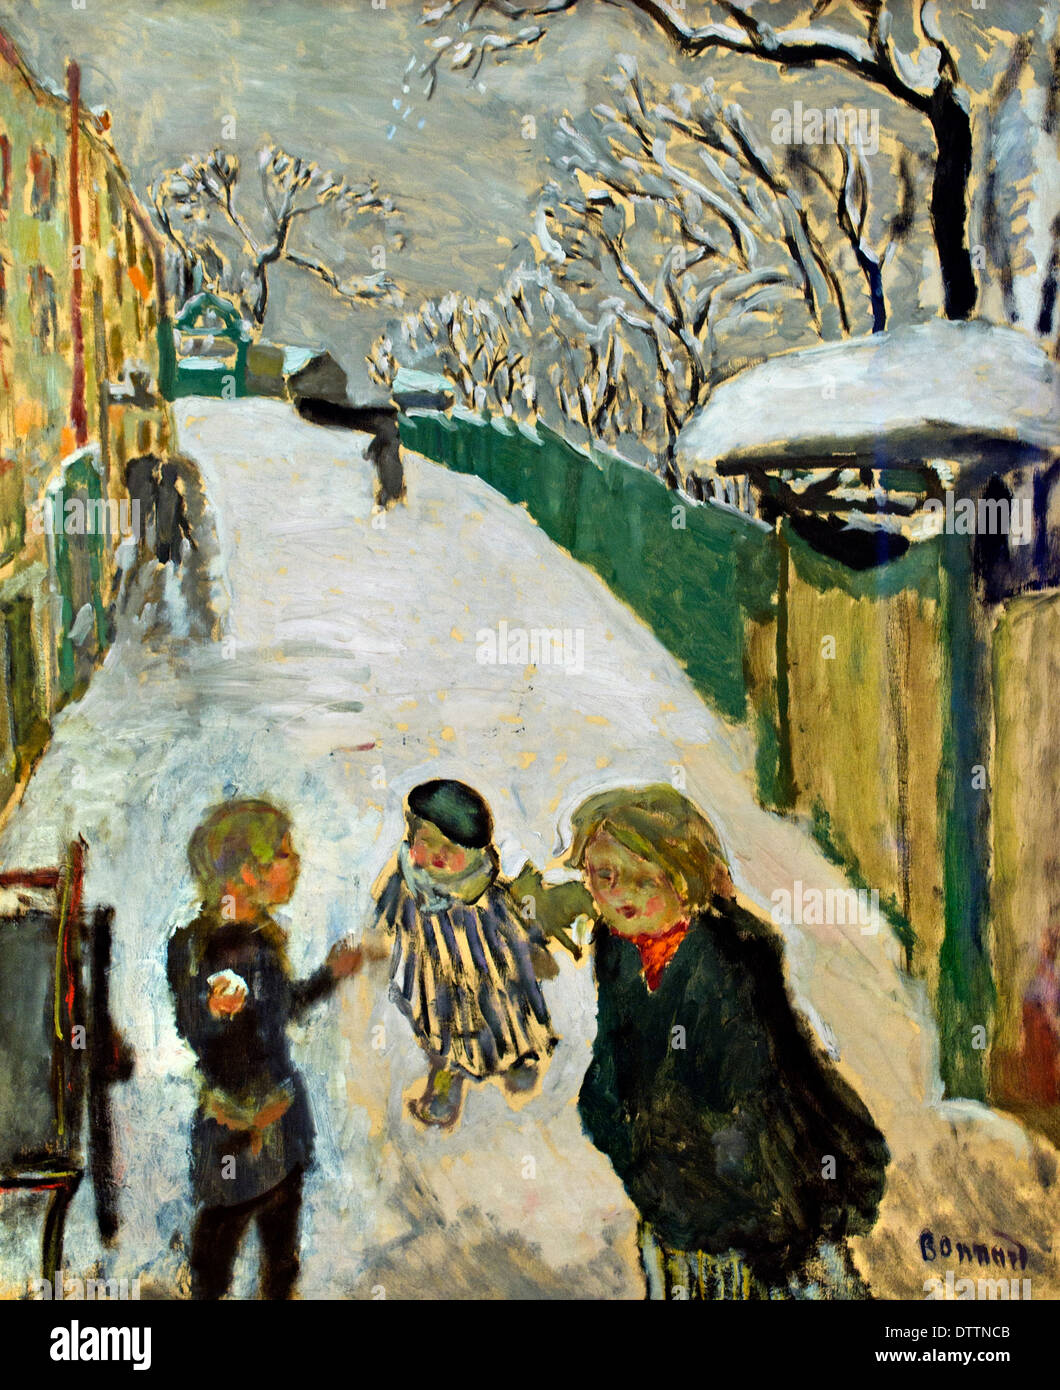 Street in the snow with children playing 1907 Pierre Bonnard 1867-1947  France French - Stock Image